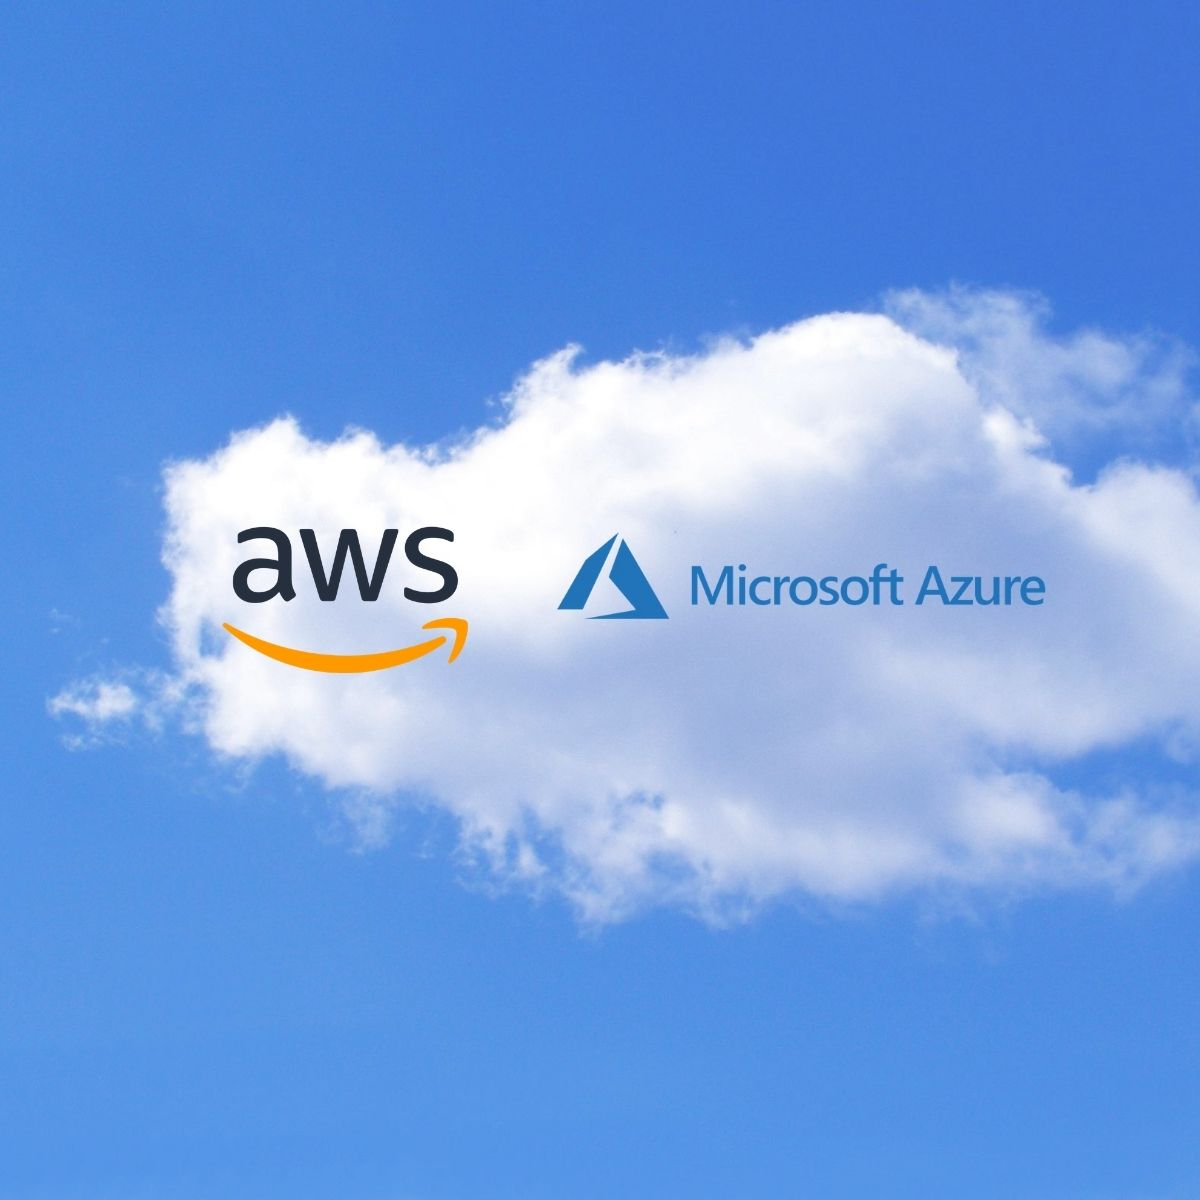 Image of AWS and Microsoft Azure